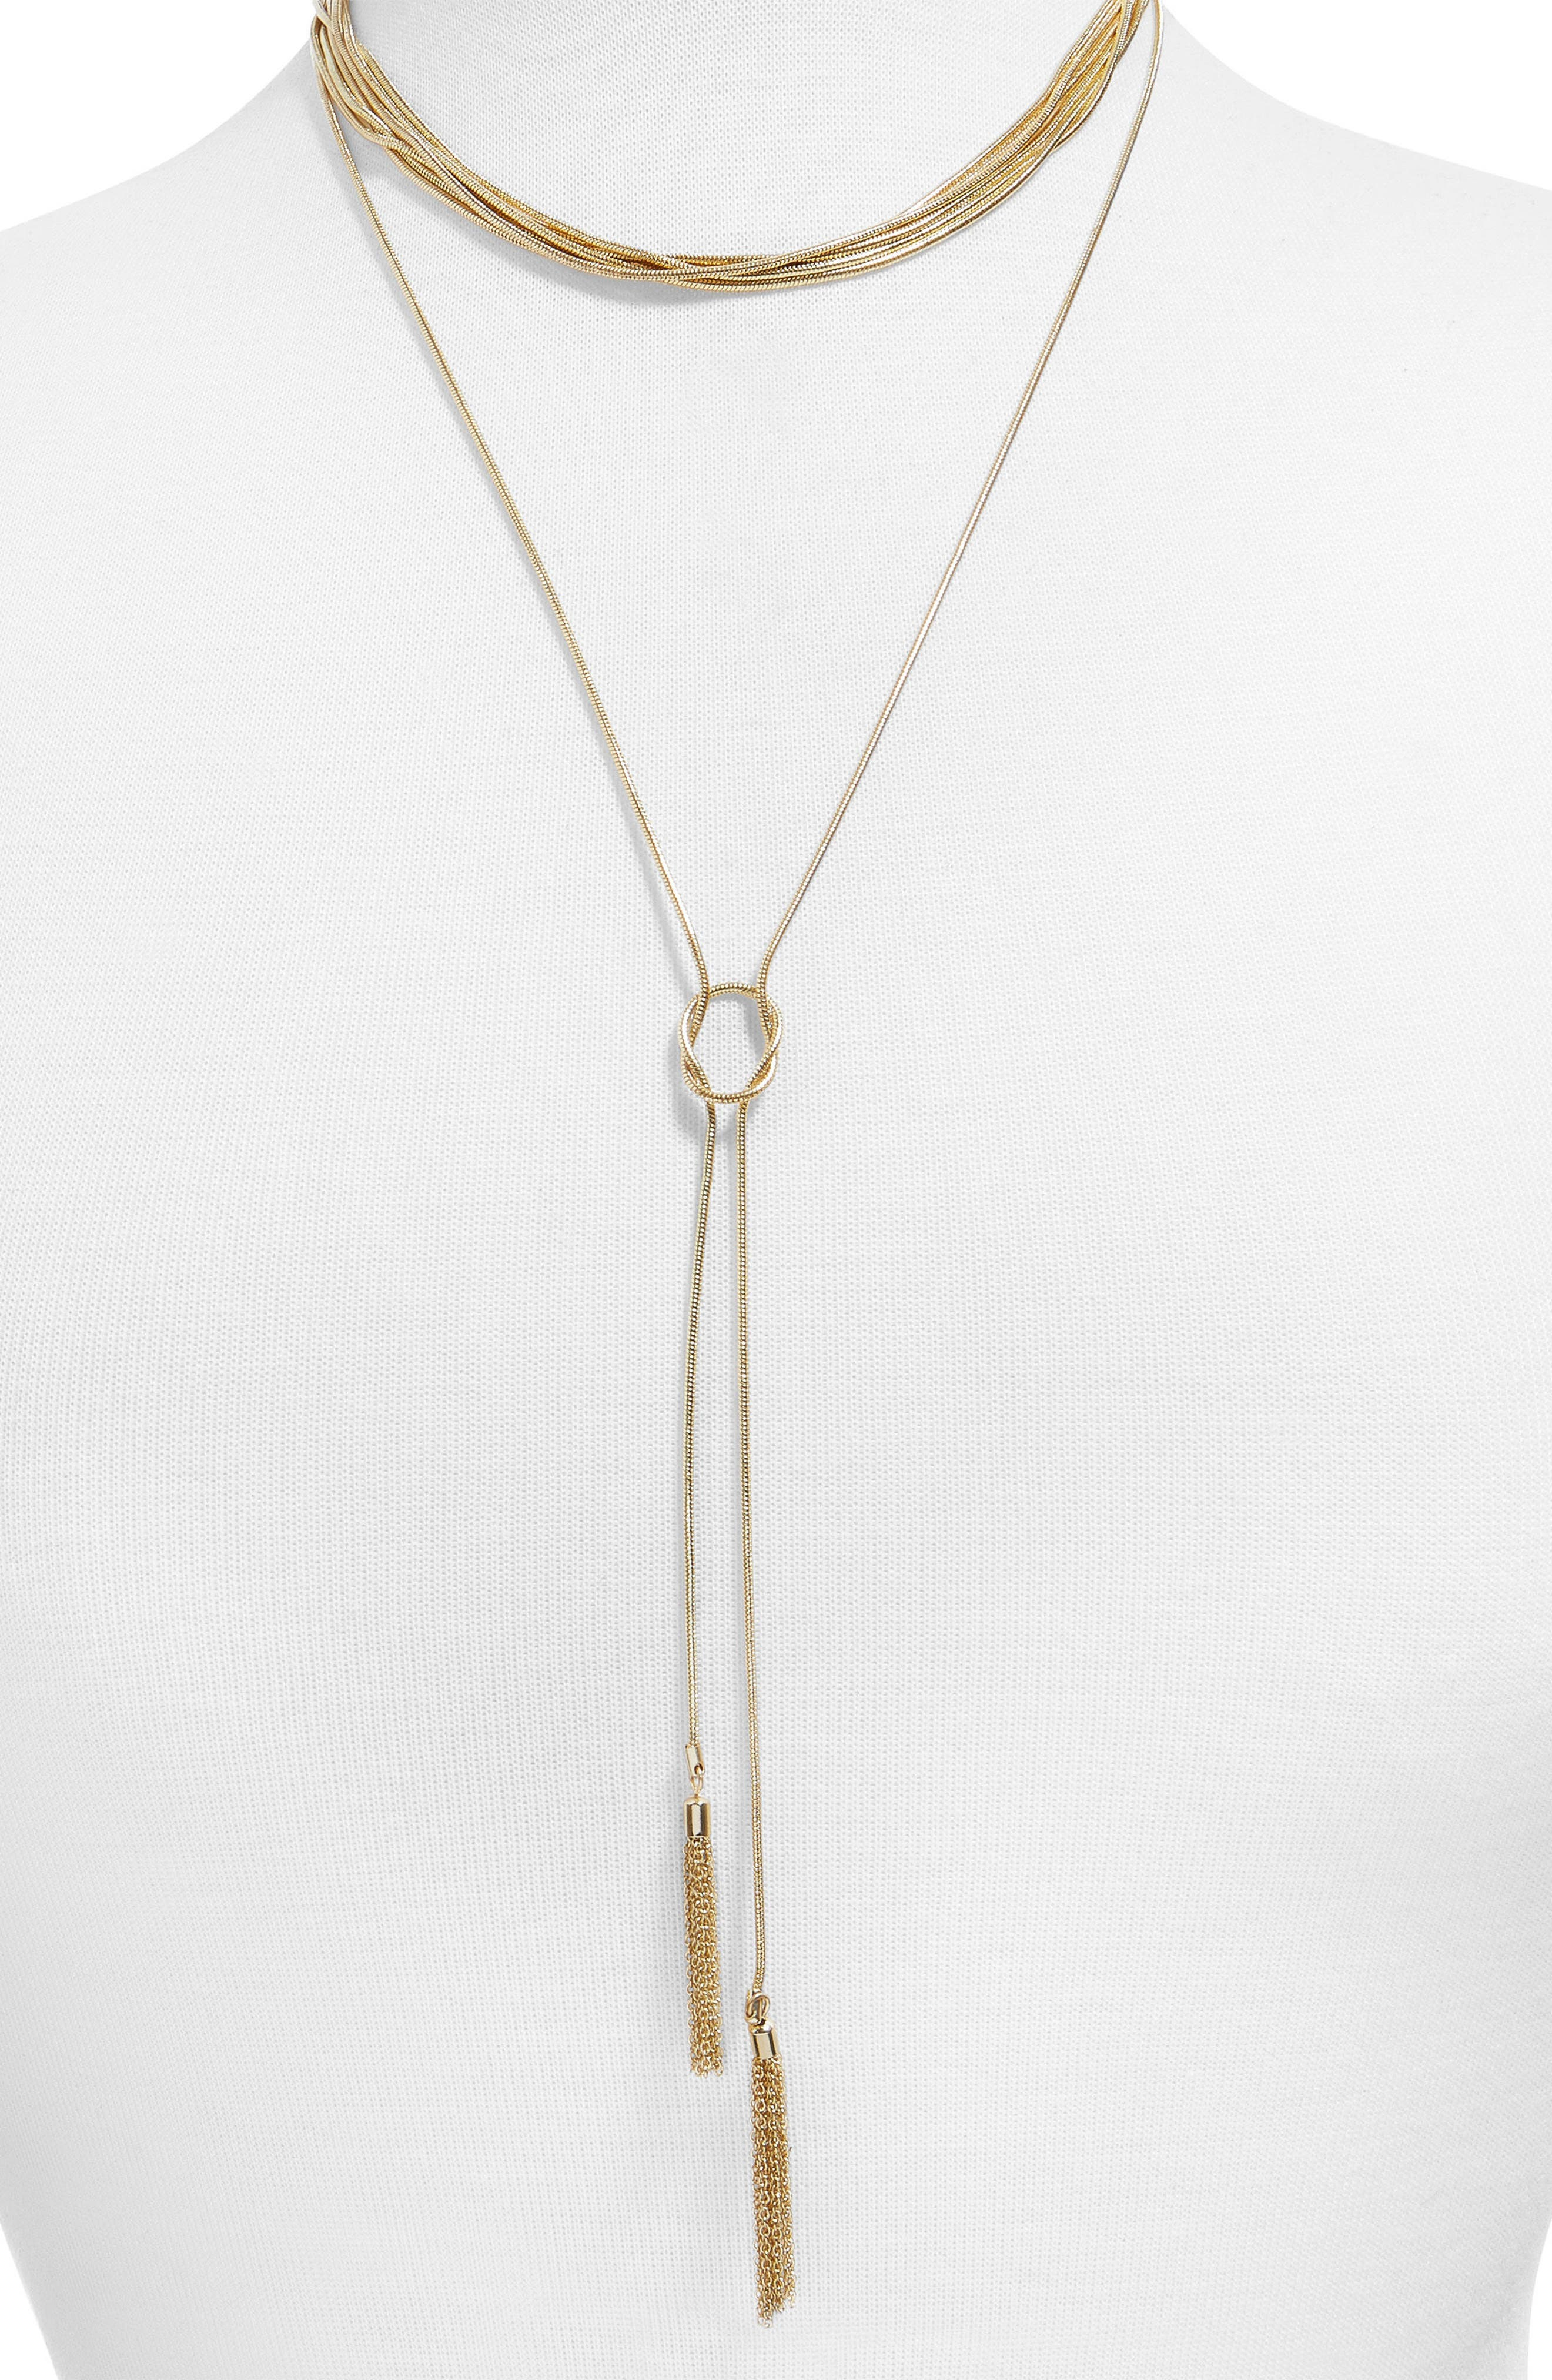 Delania Set of 2 Layered & Lariat Necklaces,                             Main thumbnail 1, color,                             Gold